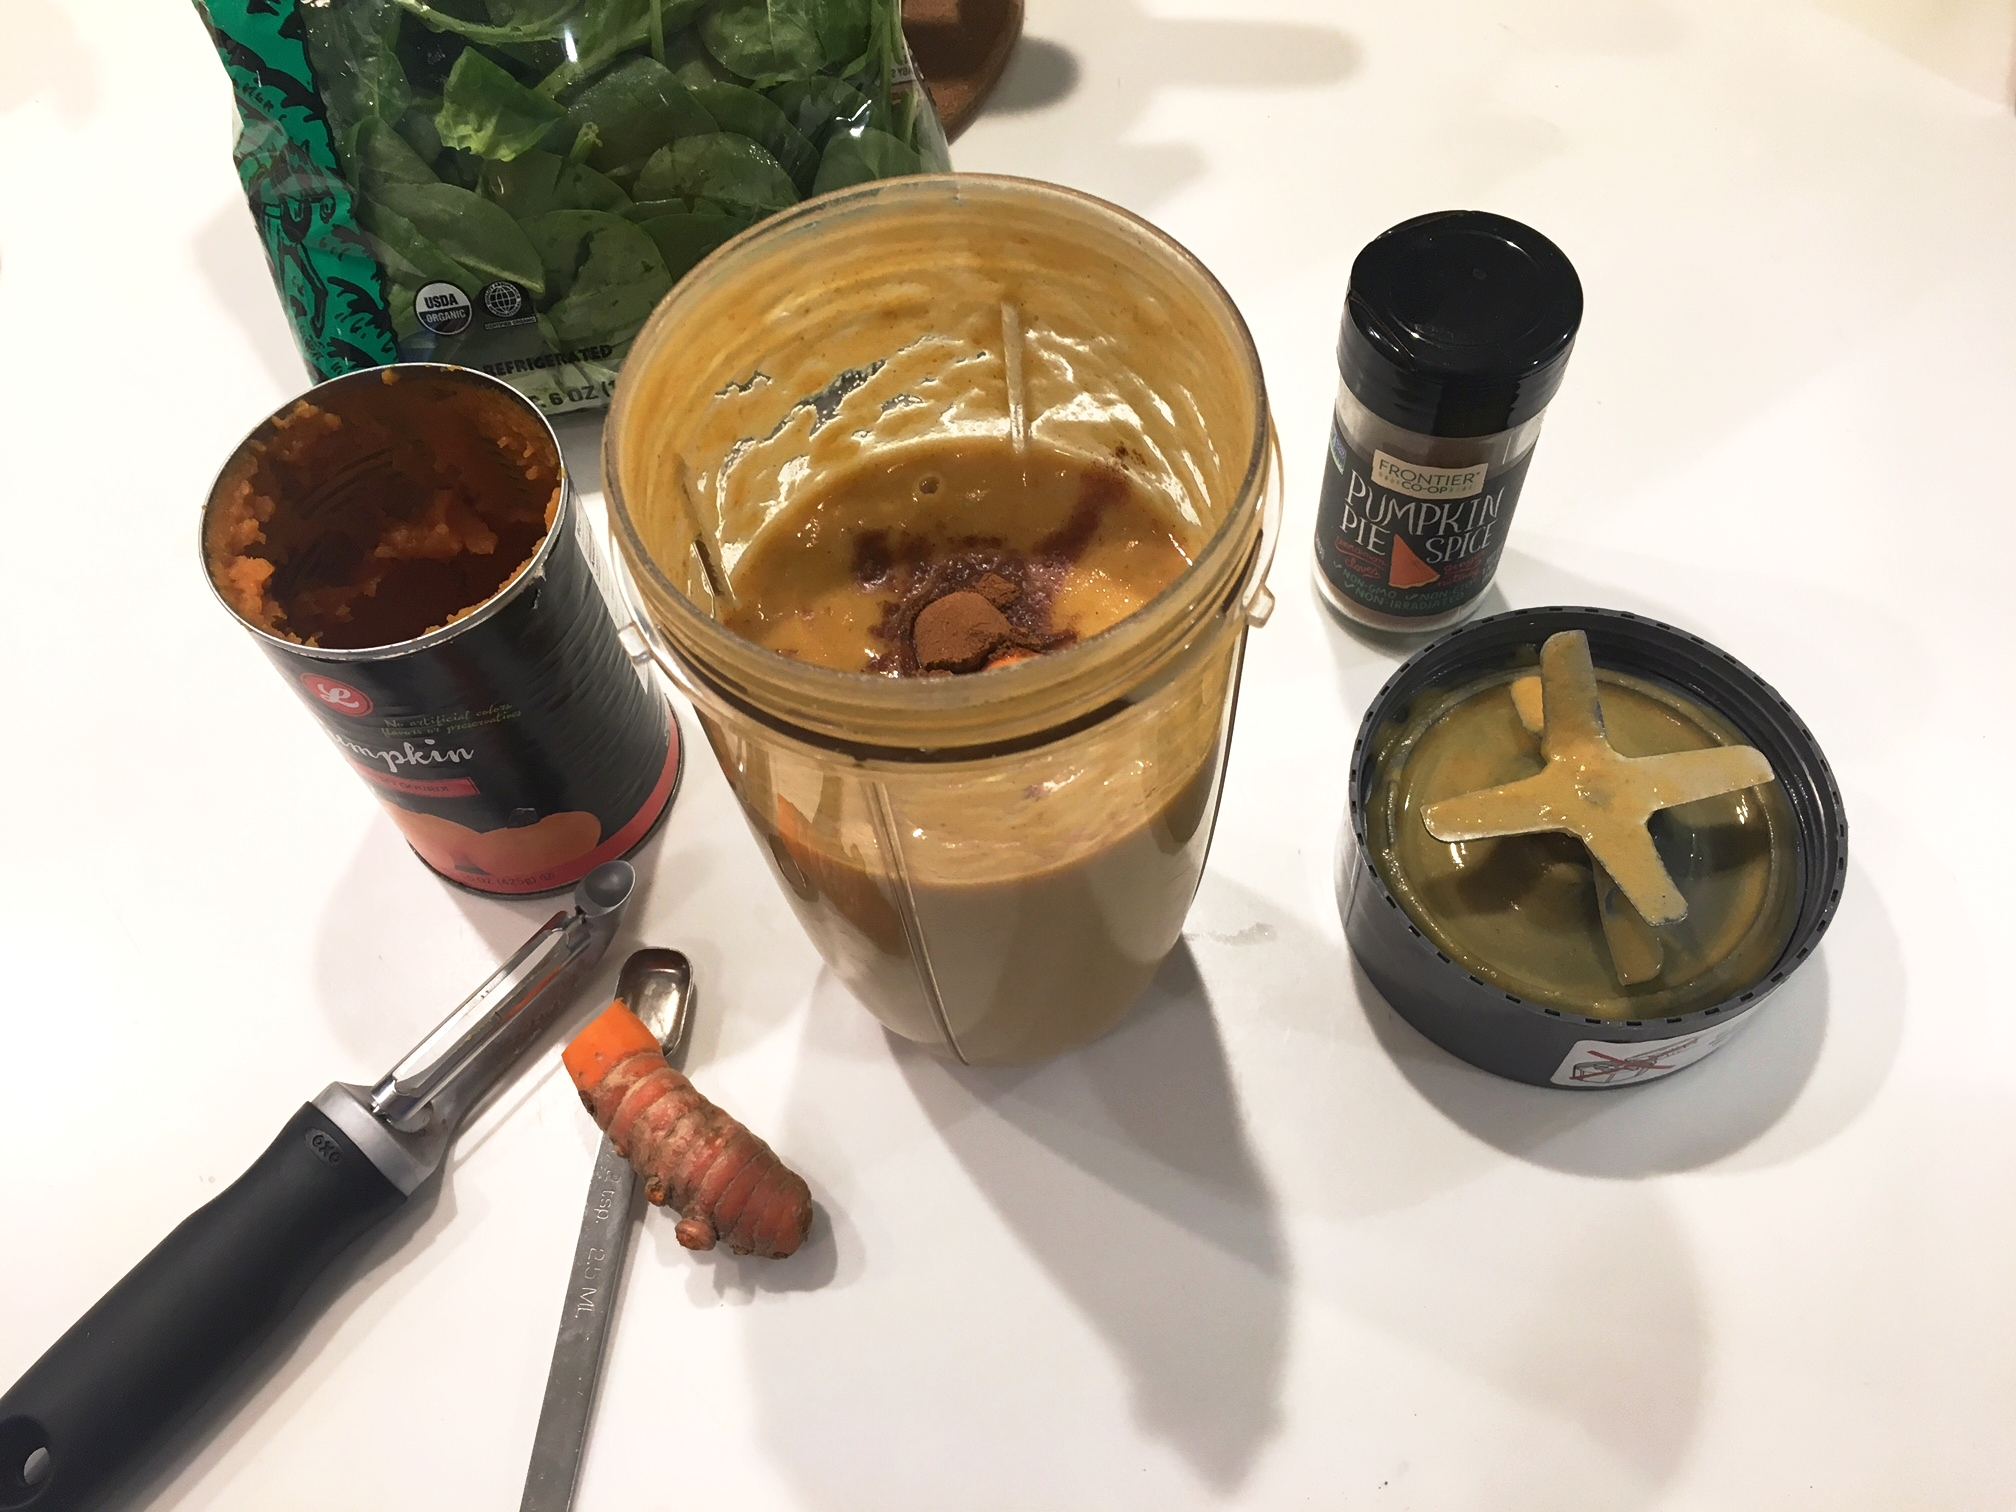 The makings of this anti-inflammatory pumpkin smoothie ~ check out the turmeric!